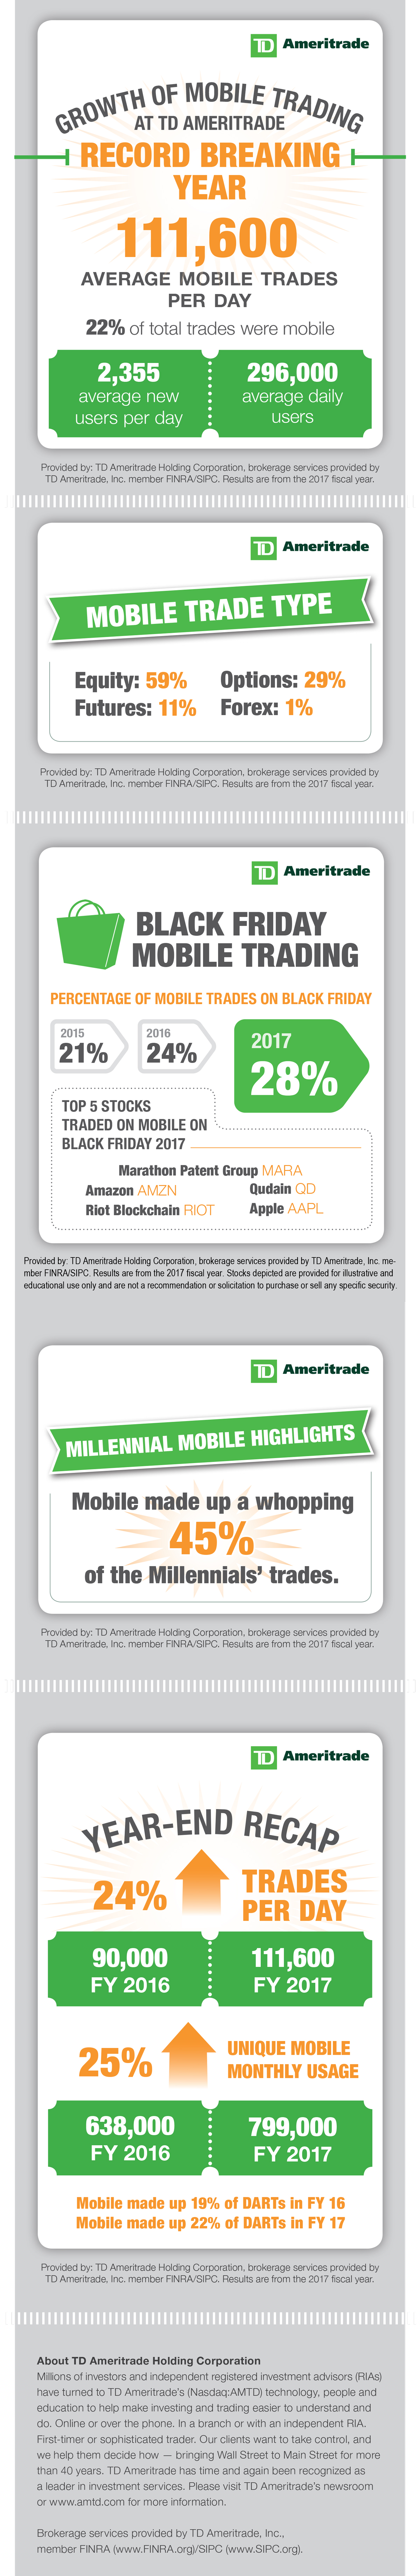 Mobile Trading Continues to Grow - TD Ameritrade Holding Corporation